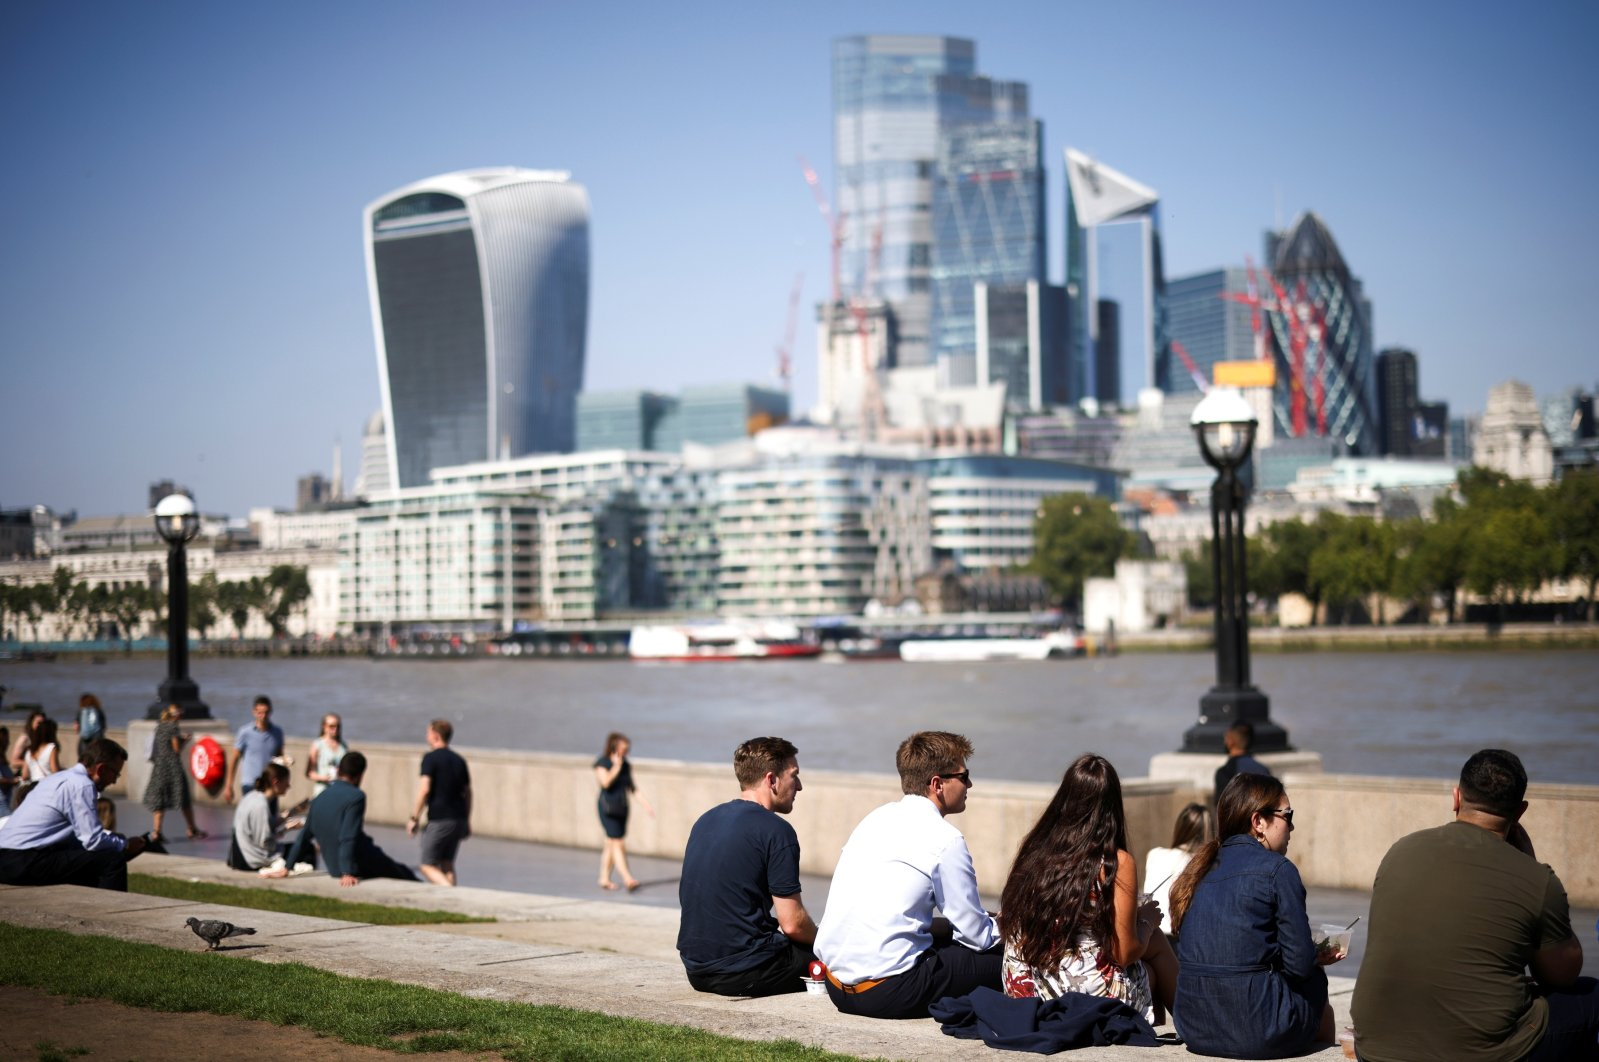 The City of London financial district can be seen in the background as people relax in the sunny weather on the south side of the River Thames in London, Britain, Sept. 7, 2021. (Reuters Photo)